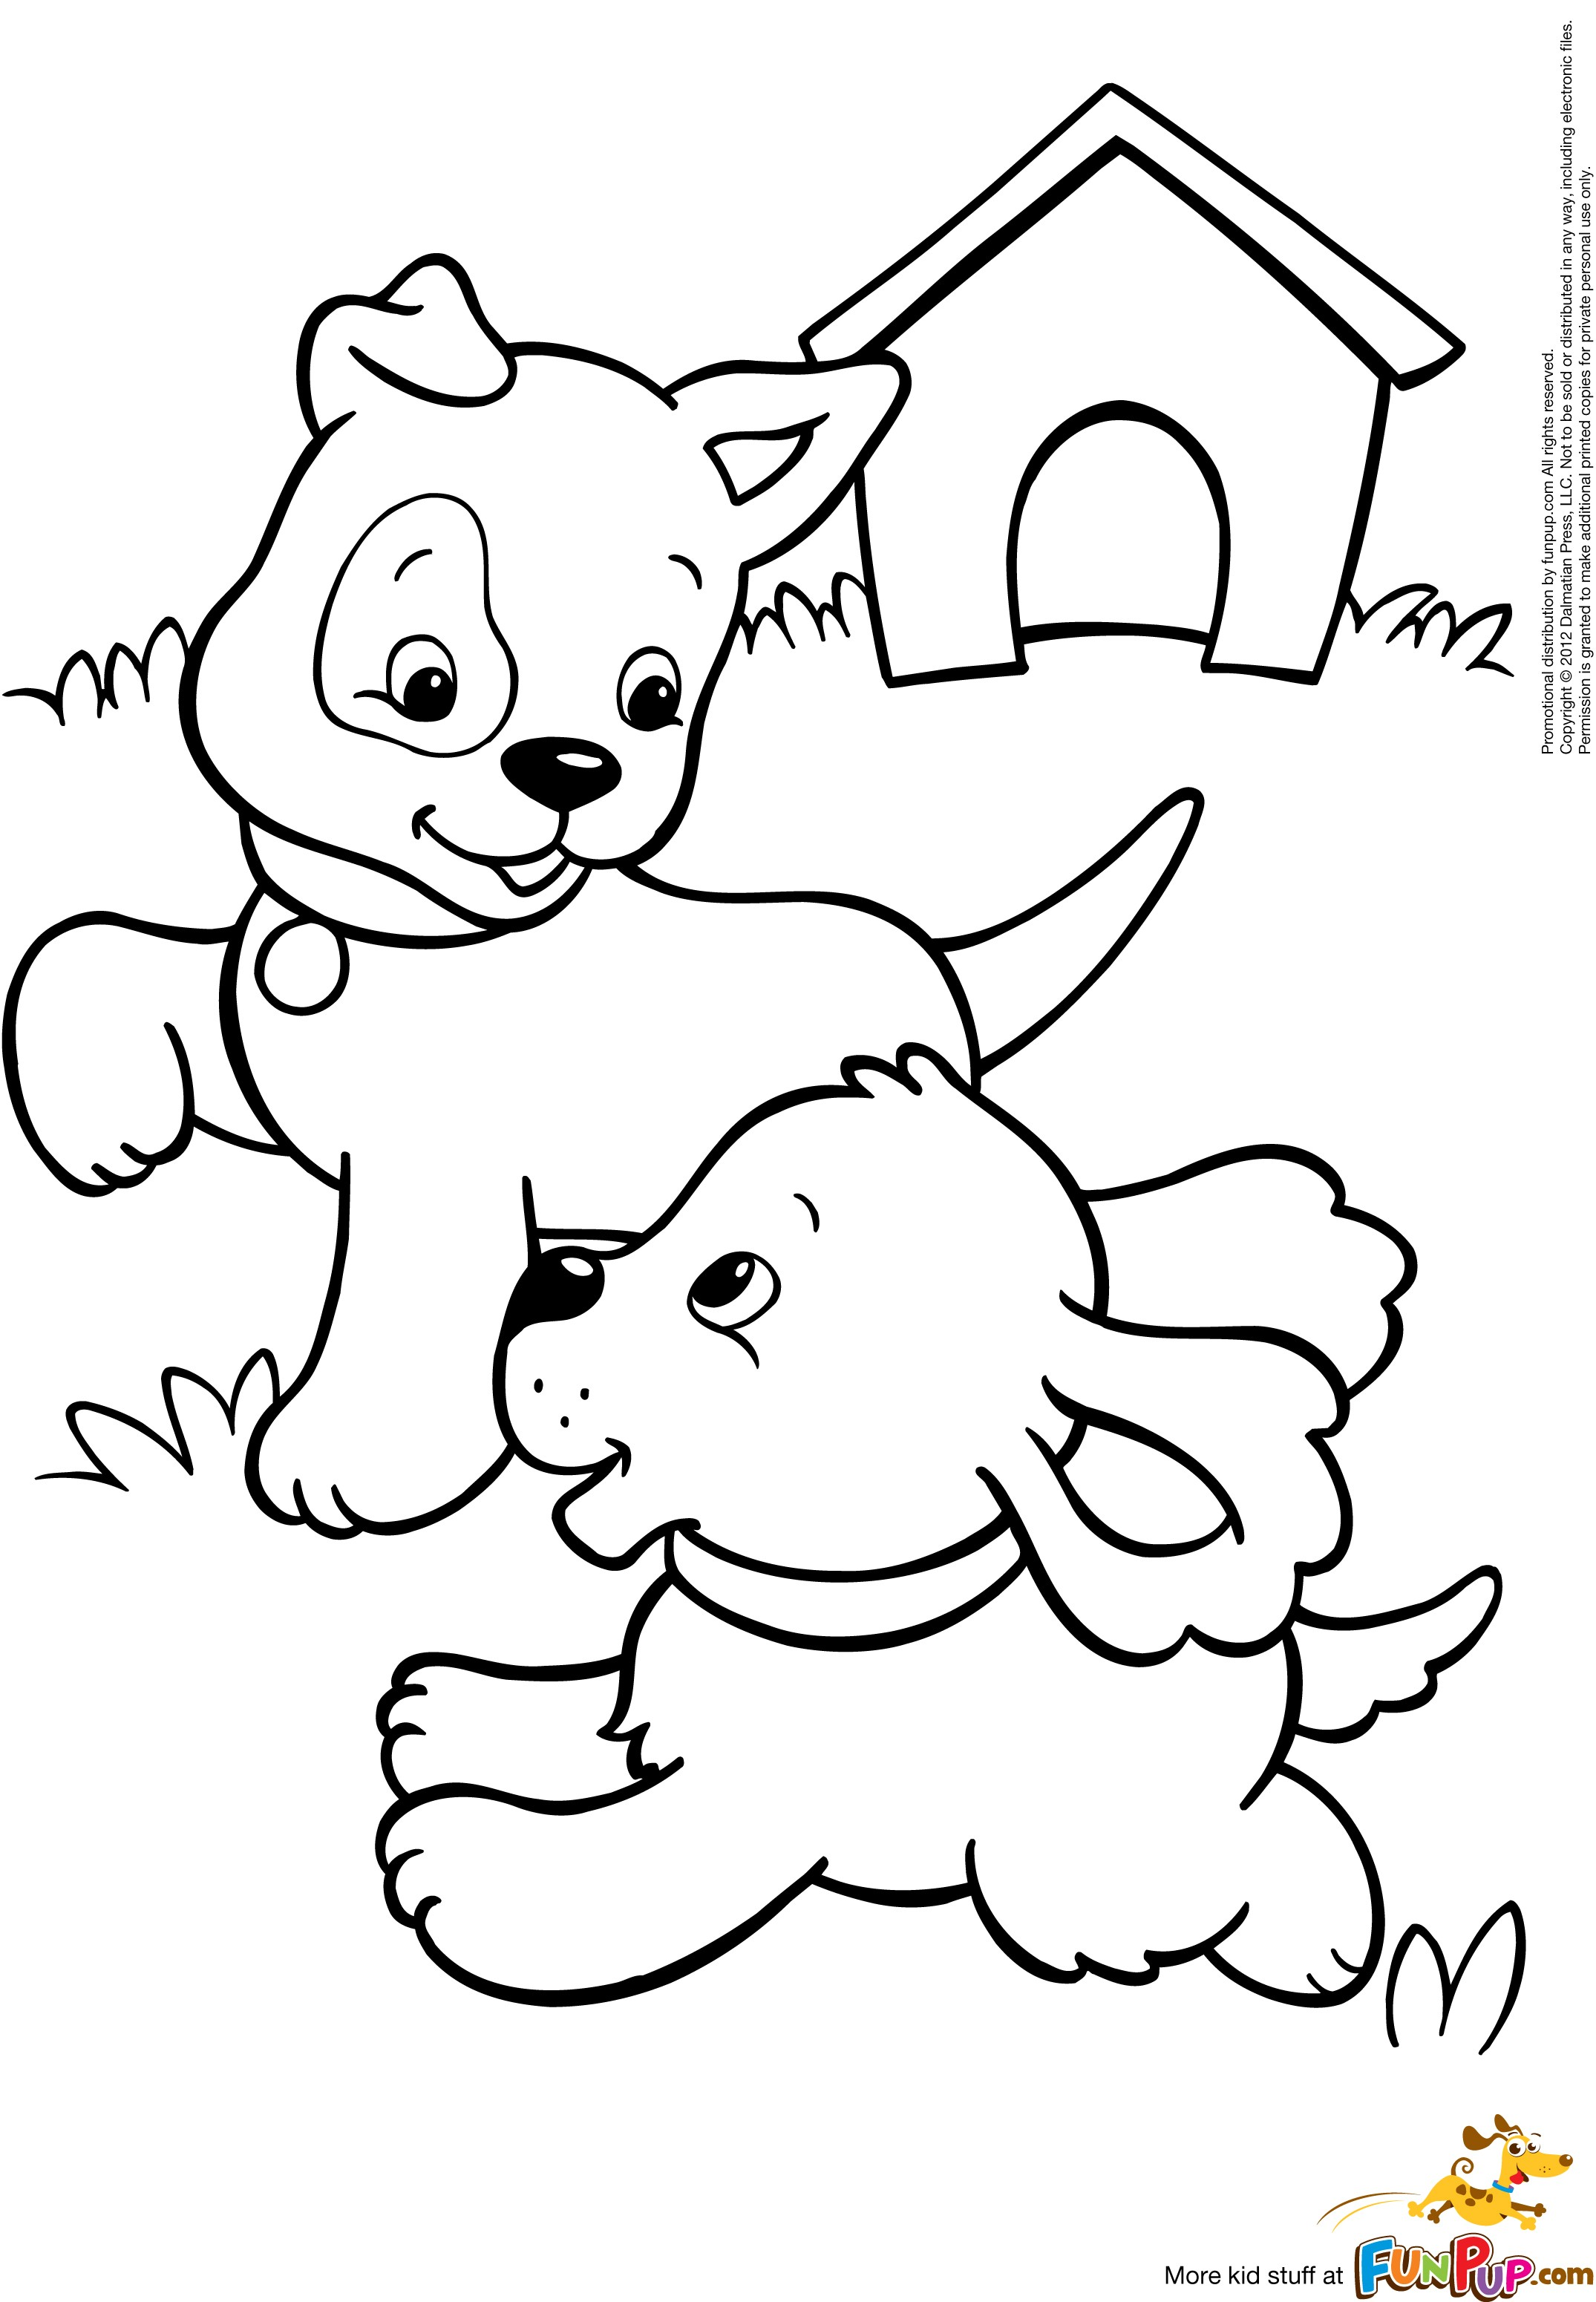 dog coloring pictures to print sad puppy coloring pages at getcoloringscom free to coloring print dog pictures